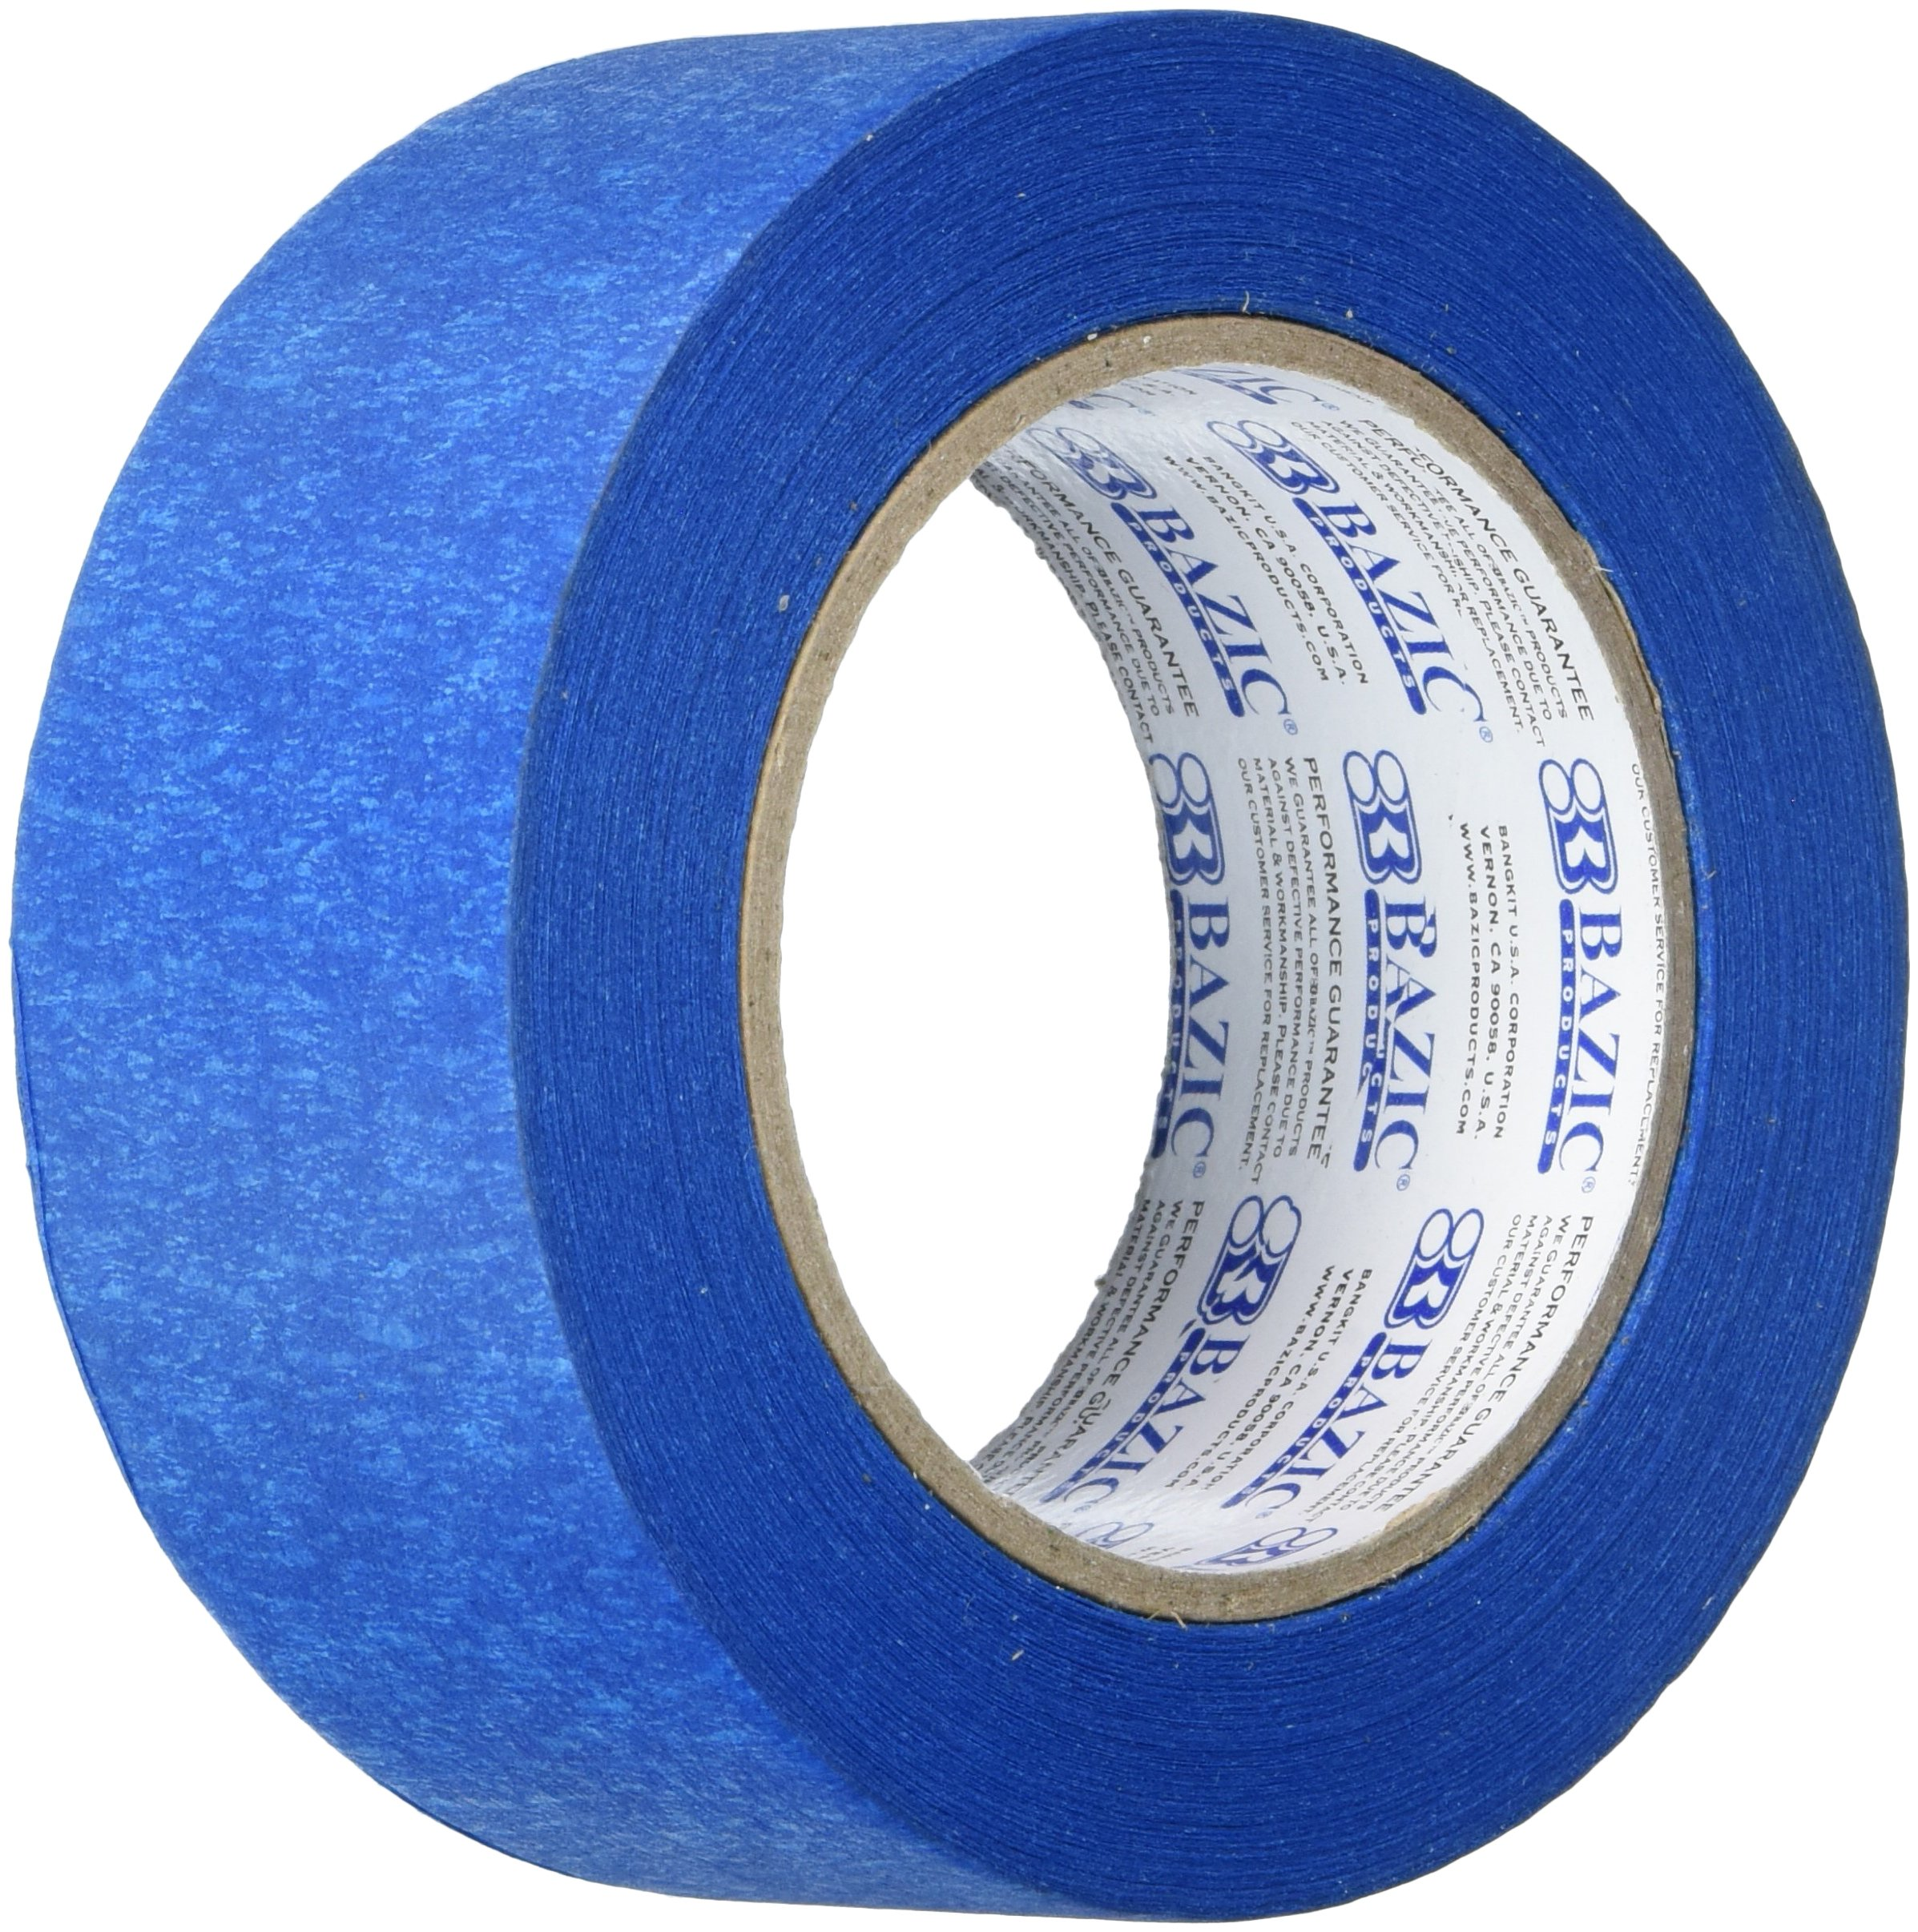 BAZIC Painter's Masking Tape, 60 Yards, Blue